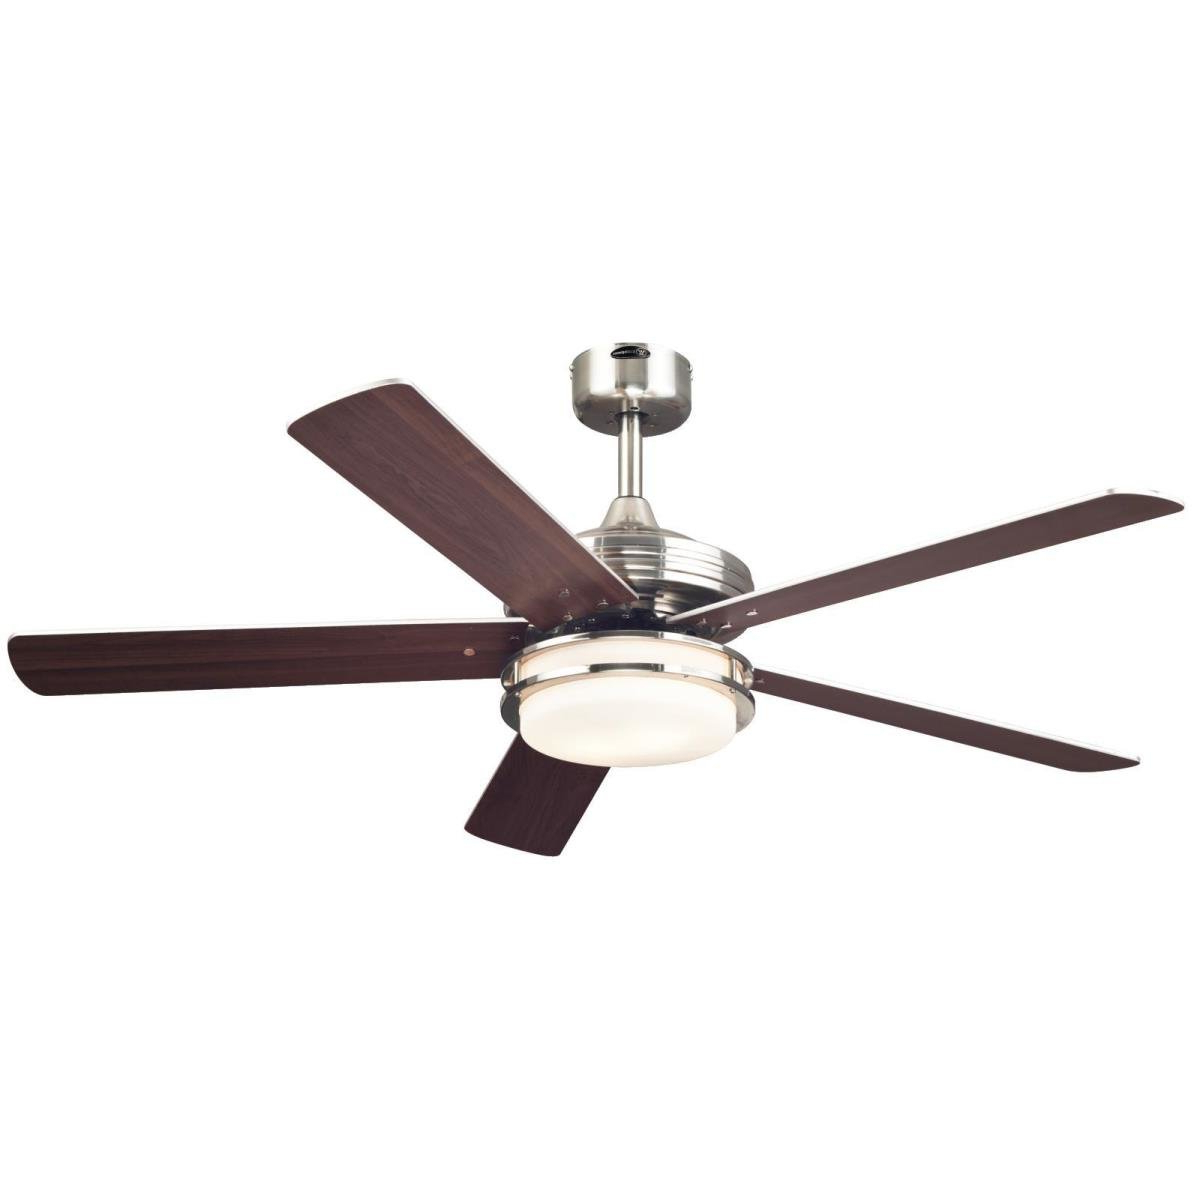 "Most Current Windemere 5 Blade Ceiling Fans With Remote For Andover Mills 52"" Boulder 5 Blade Ceiling Fan & Reviews (View 9 of 20)"